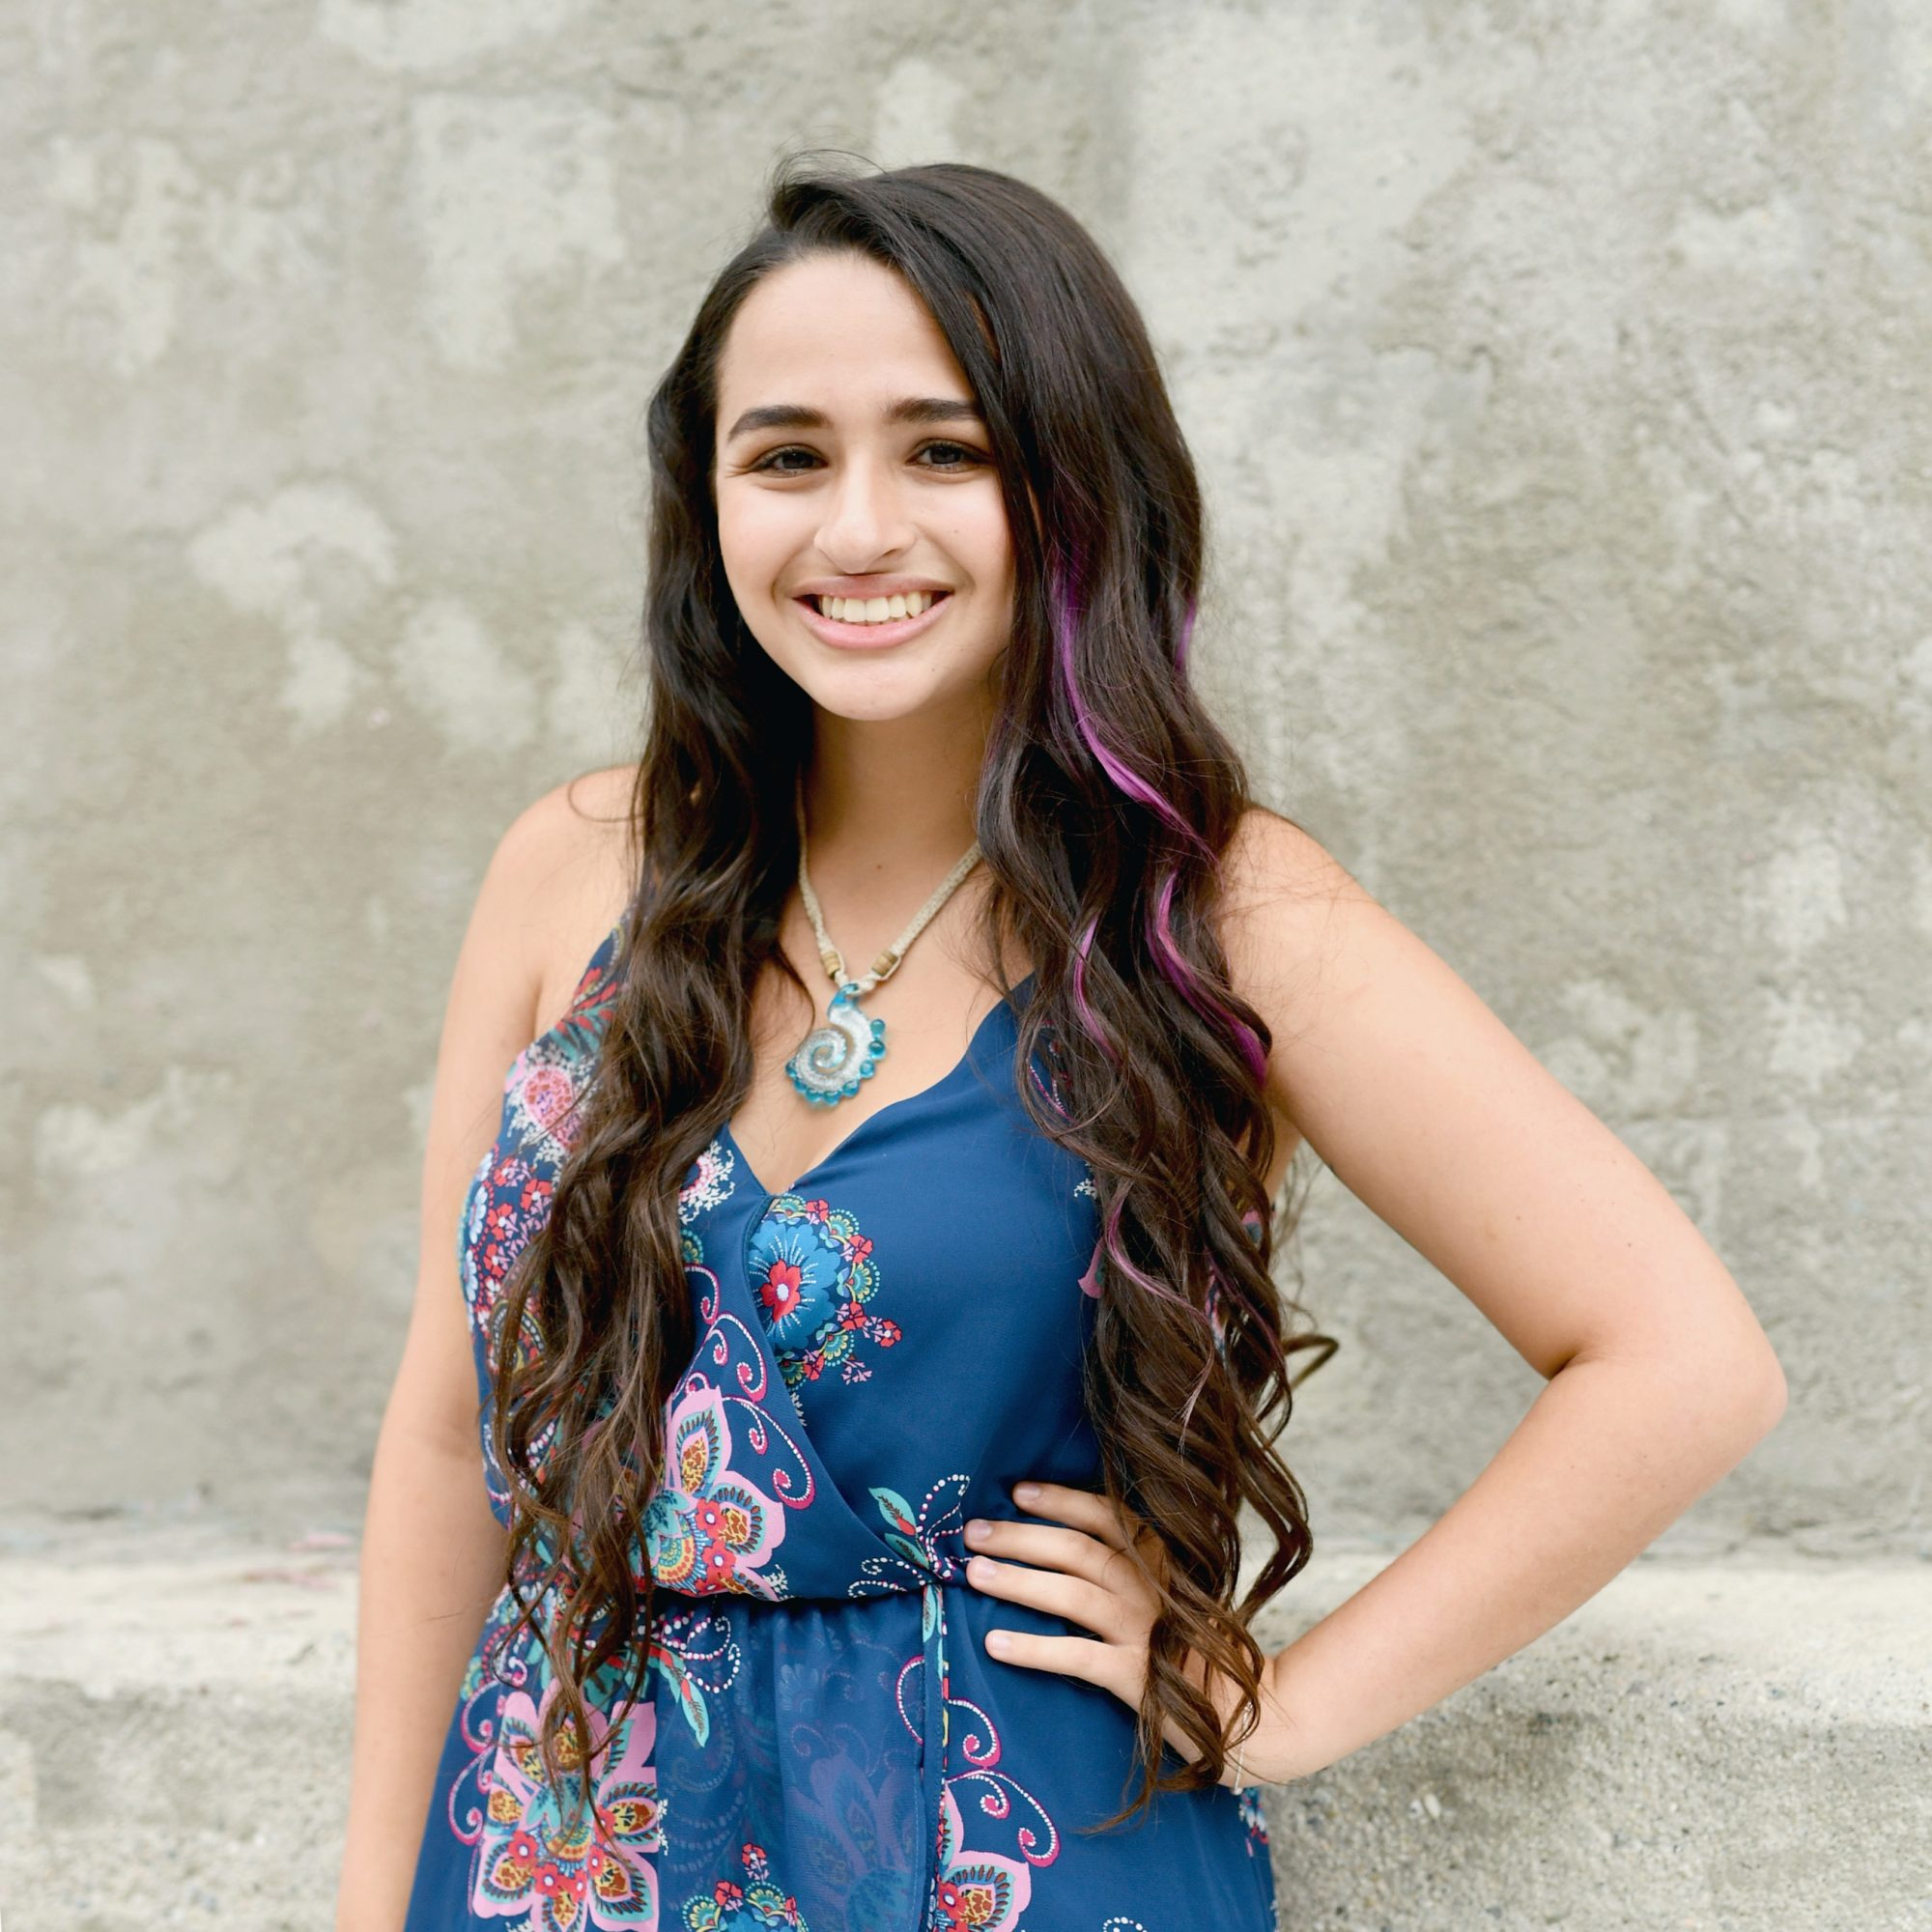 Jazz Jennings 'Nervous' She'll Feel 'Anxiety and Depression to an Even Greater Degree' in College